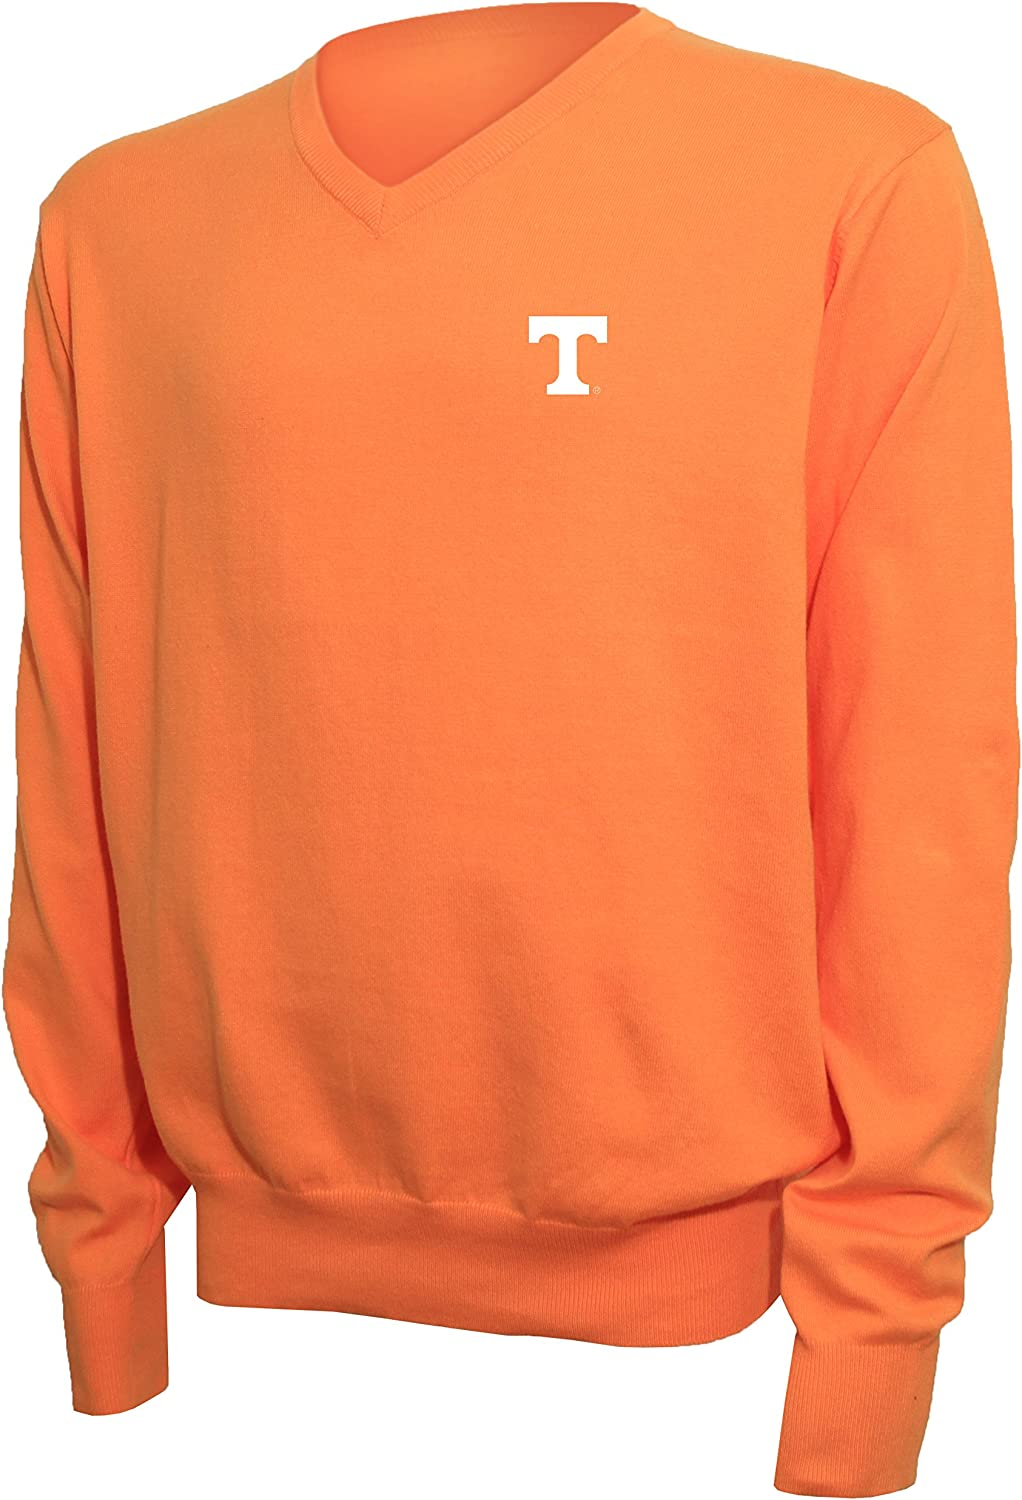 San Diego Mall NCAA Men's specialty shop Sweater V-Neck